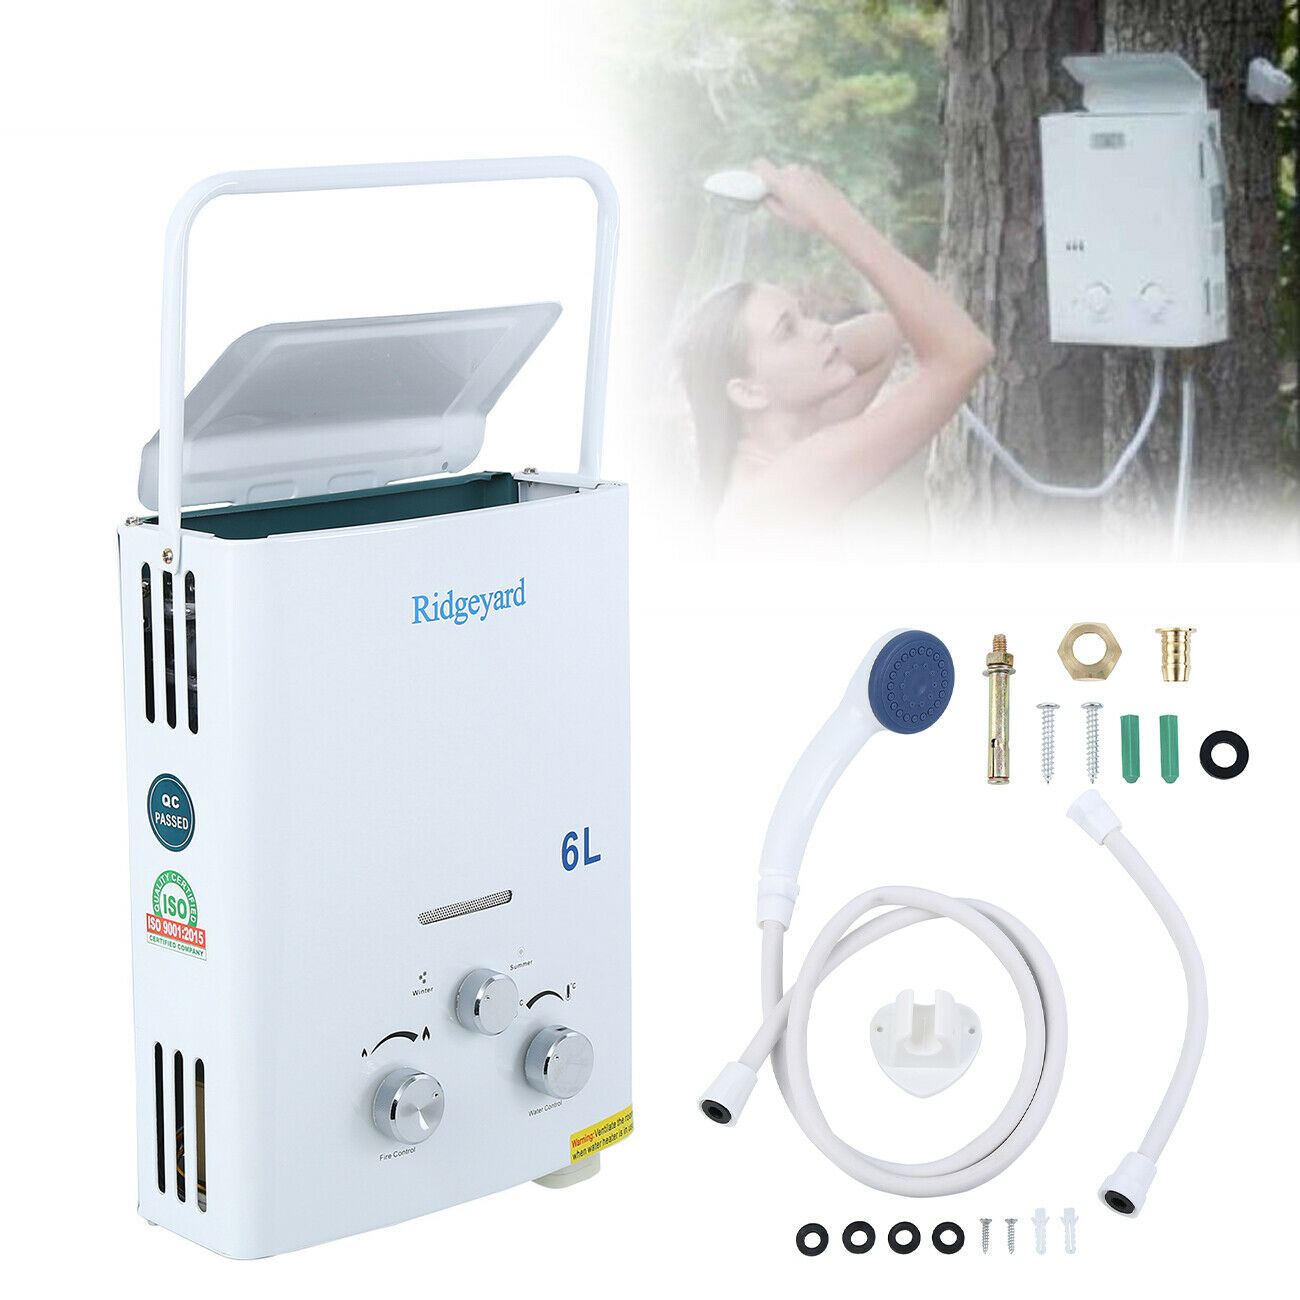 6L LPG Propane Gas Tankless Water Heater Instant Bath With Shower Head Hot Water Heater Boiler Calorifier EU Shipping